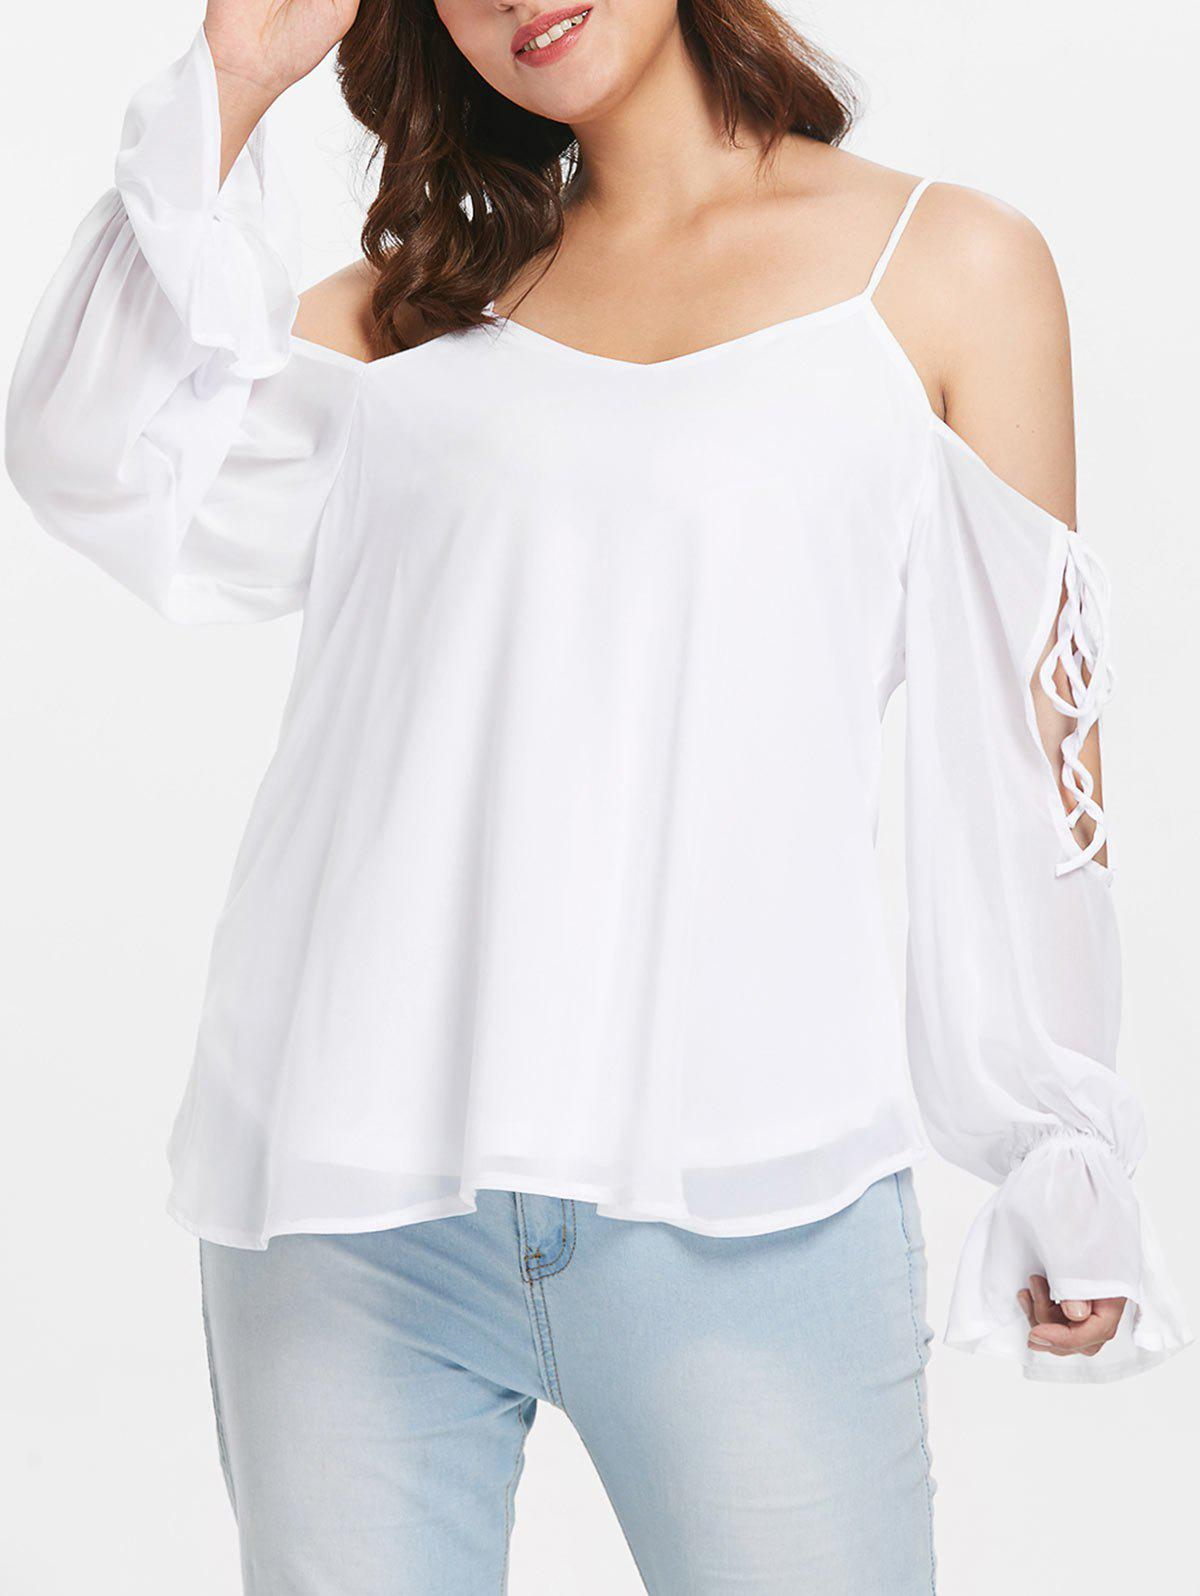 New Open Shoulder Plus Size Spaghetti Strap Blouse